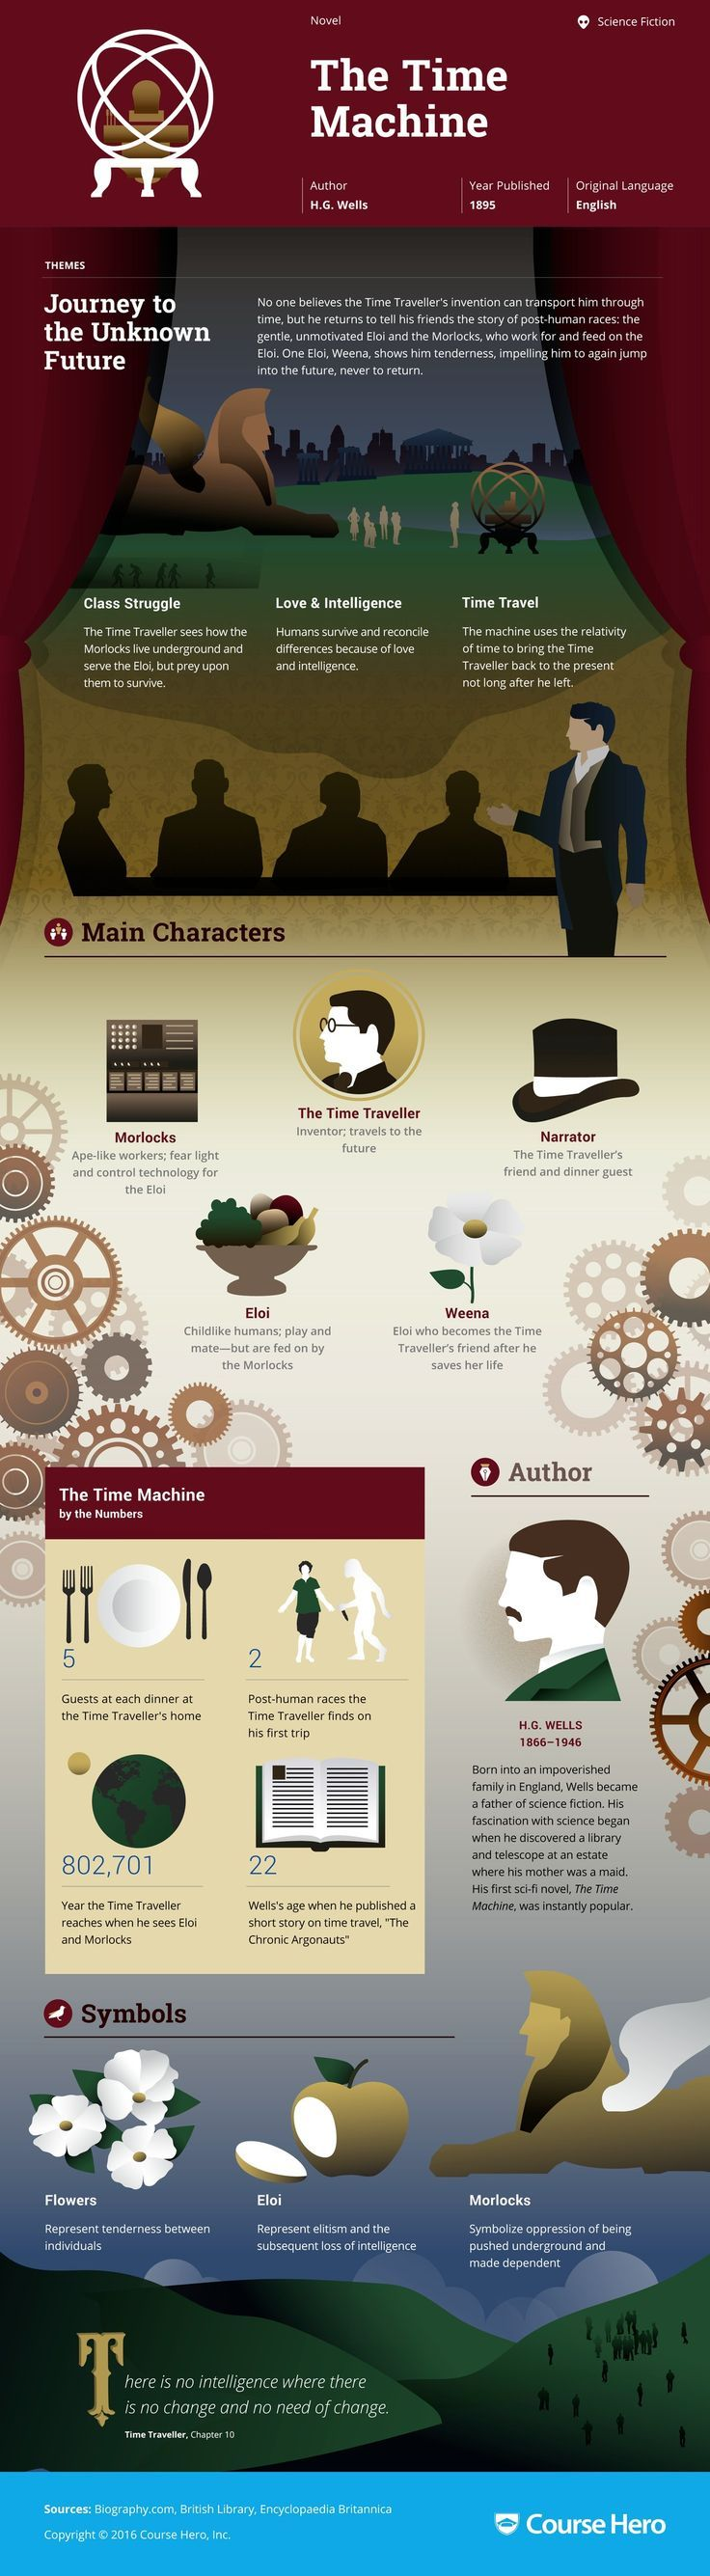 006 The Time Machine Study Guide Book infographic, Teaching